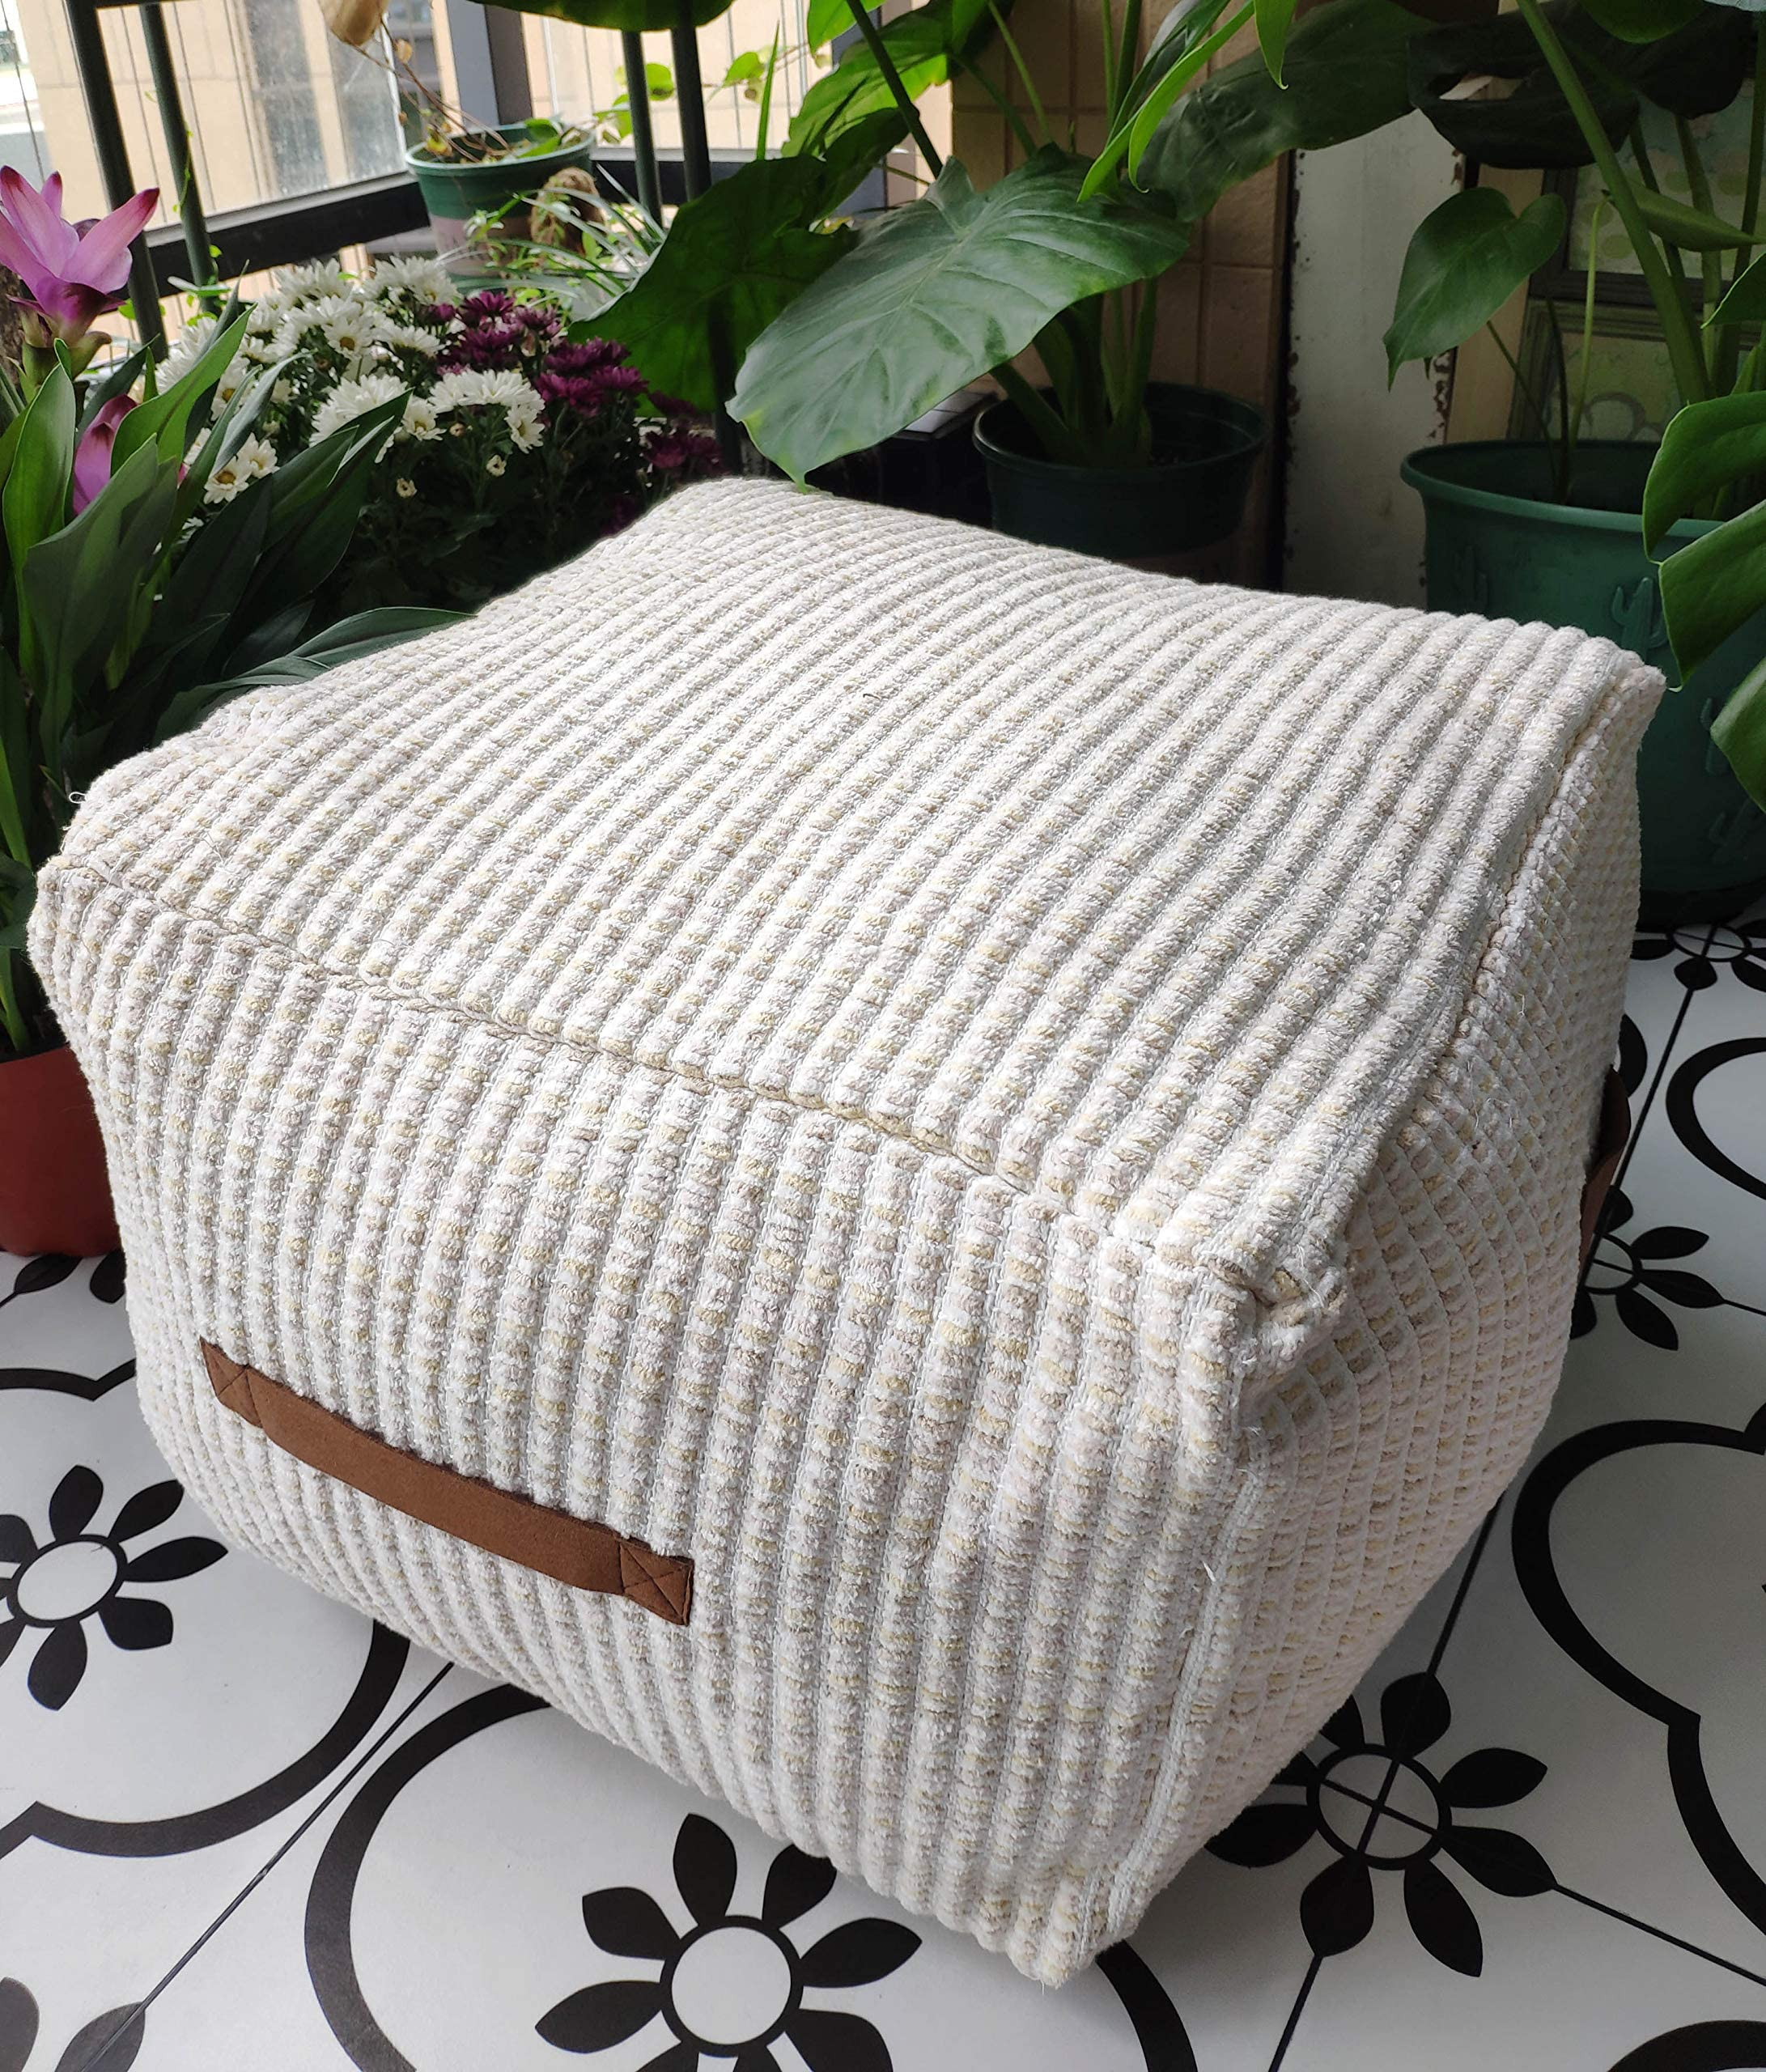 PVD011 Boho Morocco Pouf Ottoman, stuffed Refashioned from Hand Woven Berber Fabric optional